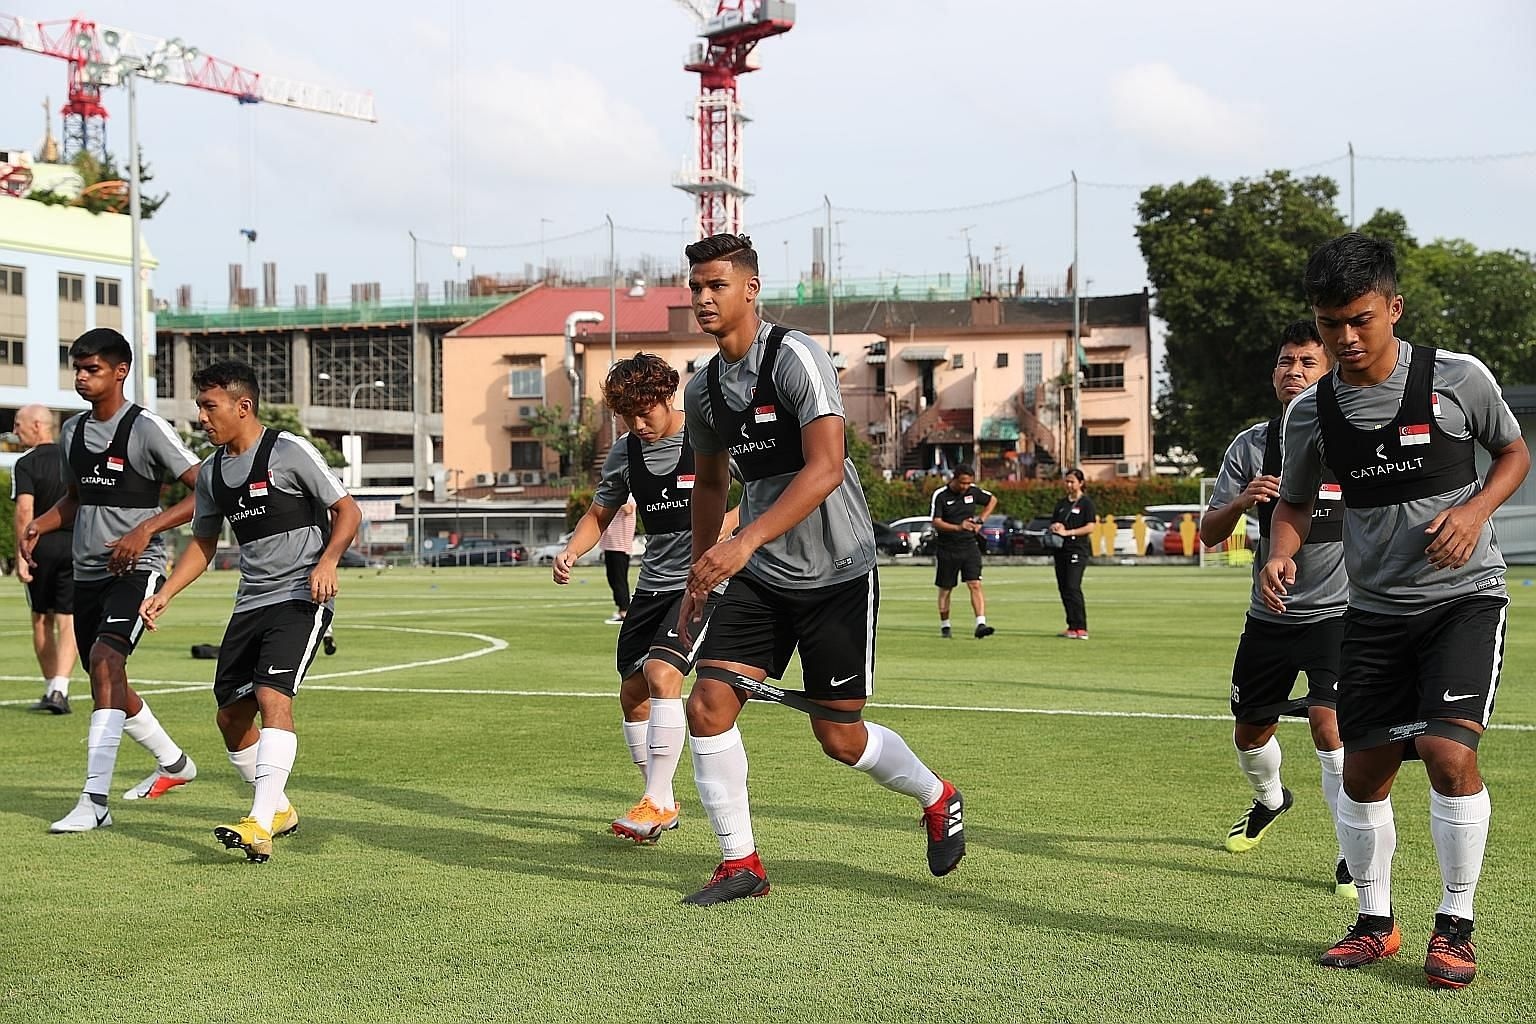 The Lions squad training at Geylang Field last week ahead of the Mauritius and Fiji friendly internationals. Among the areas coach Fandi Ahmad wants to improve on are a lack of concentration at times and the inability to capitalise on set pieces.